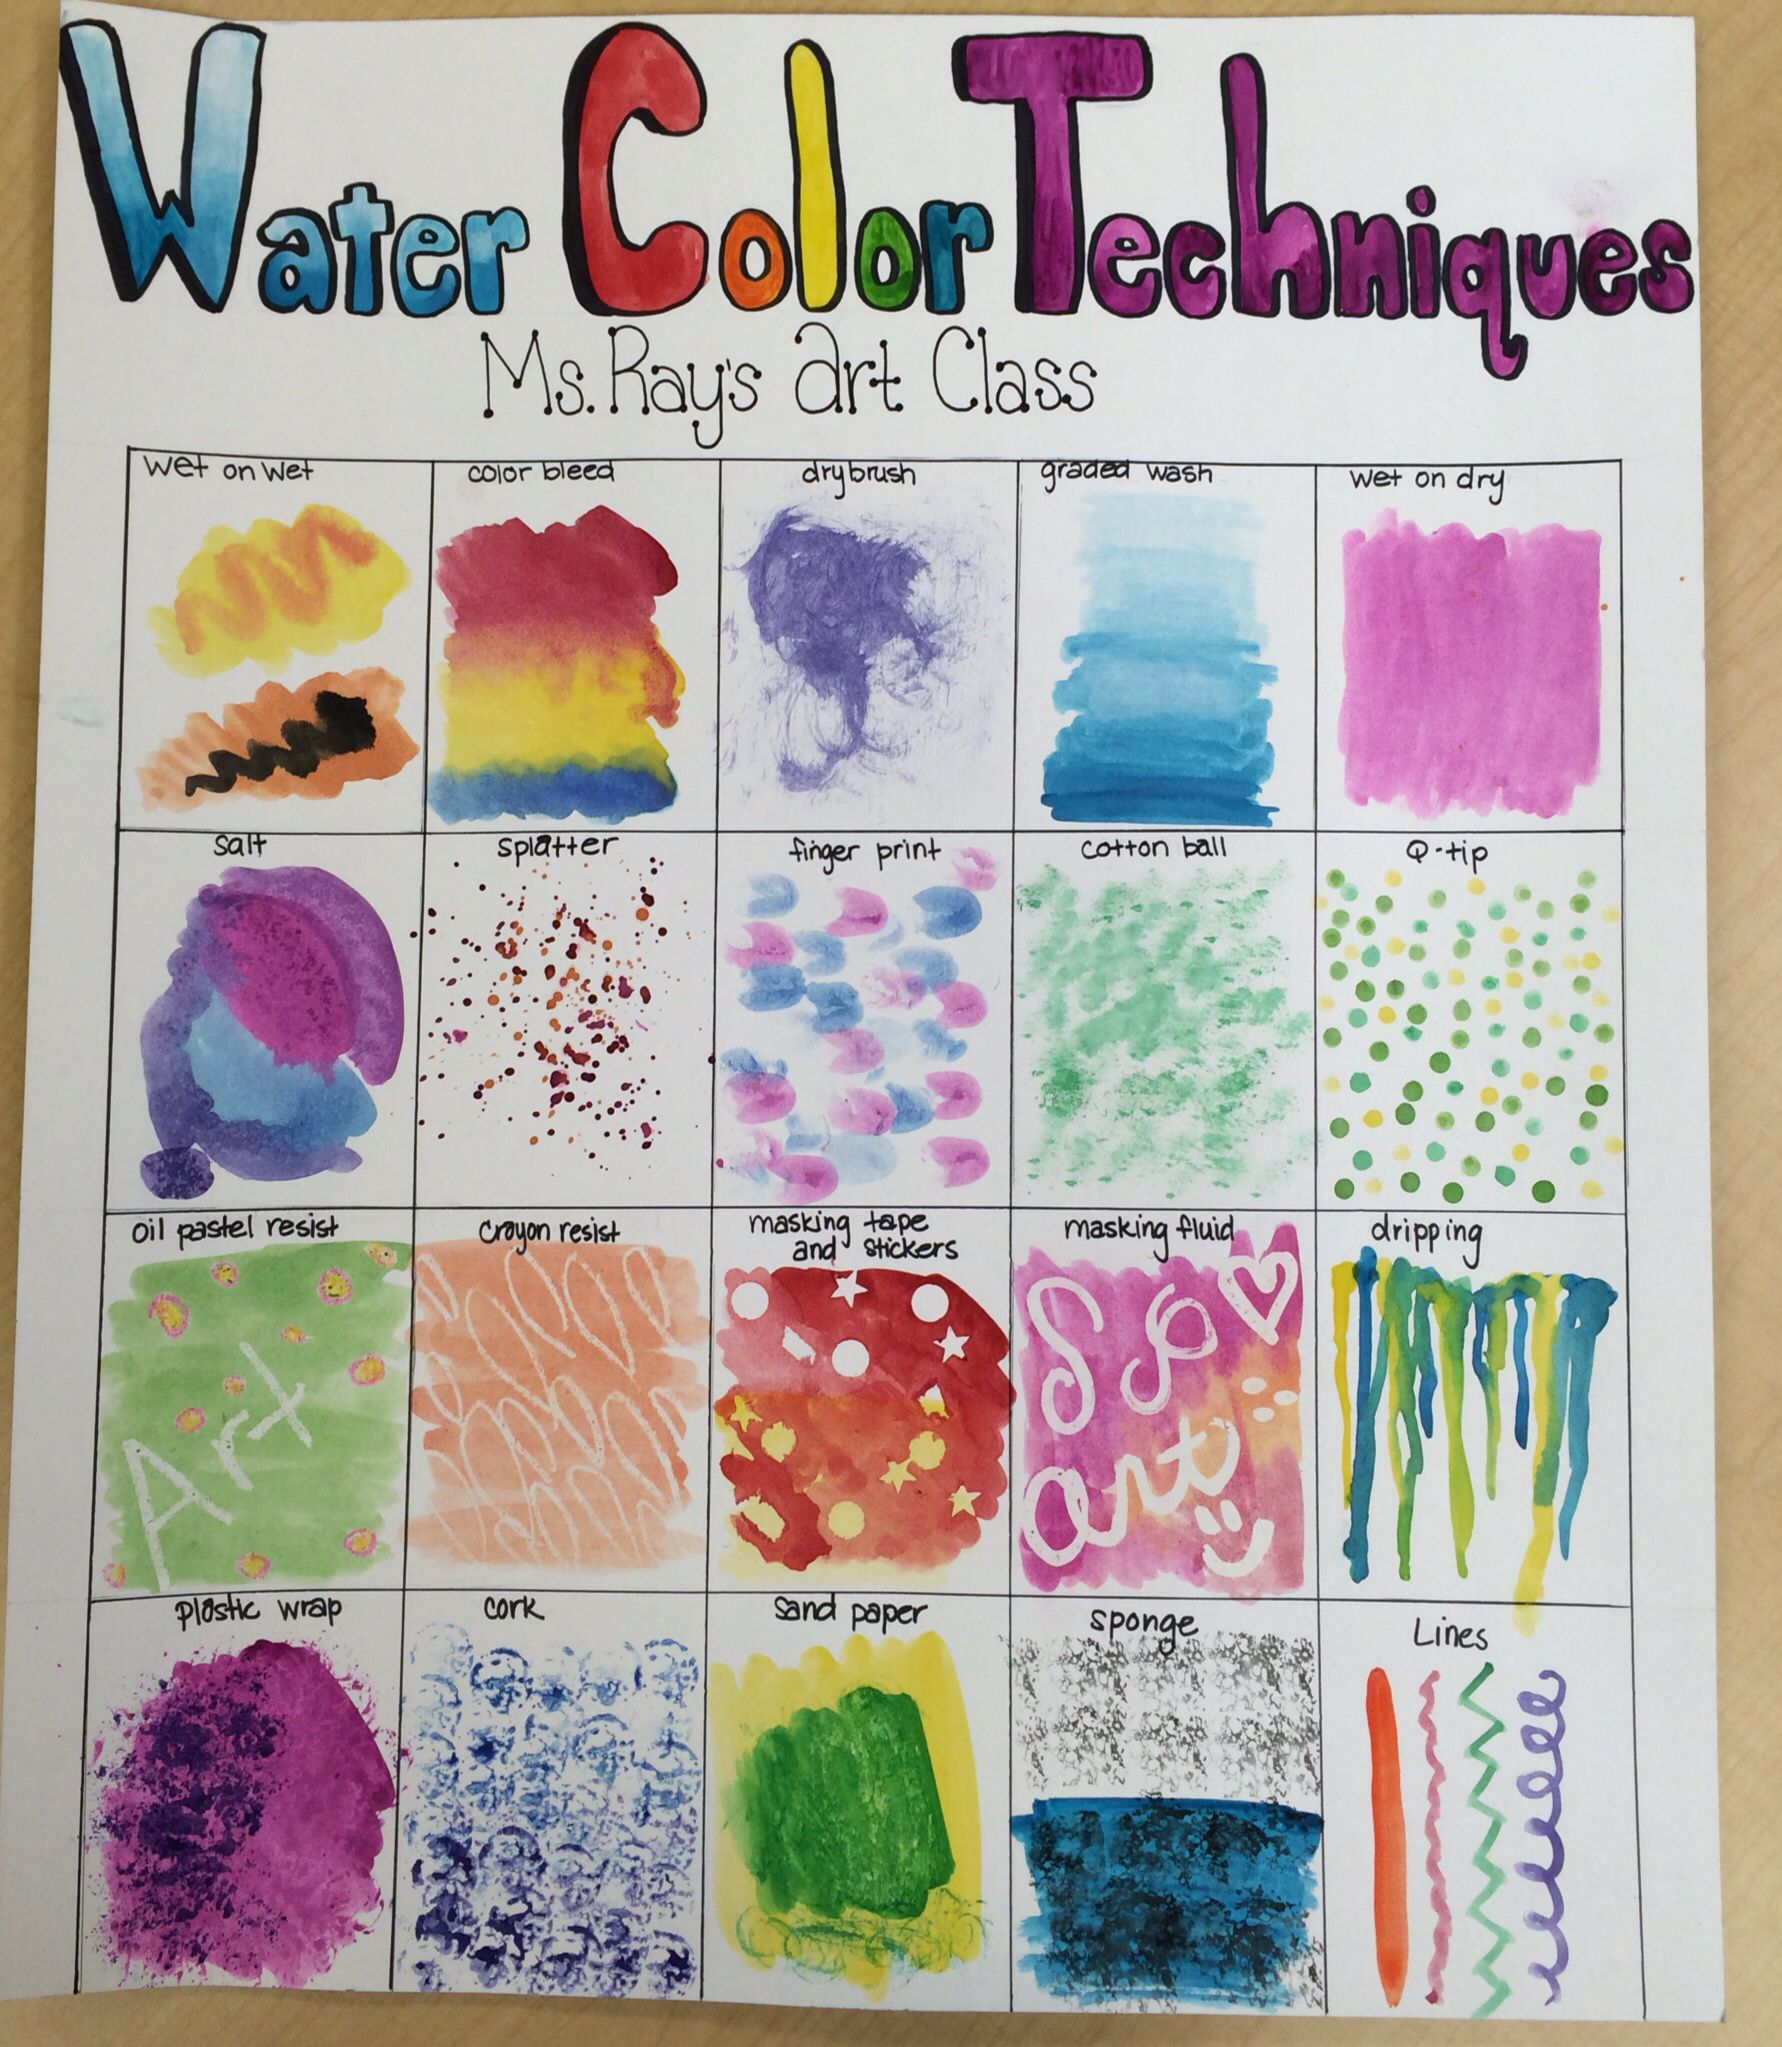 water color techniques poster middle school art